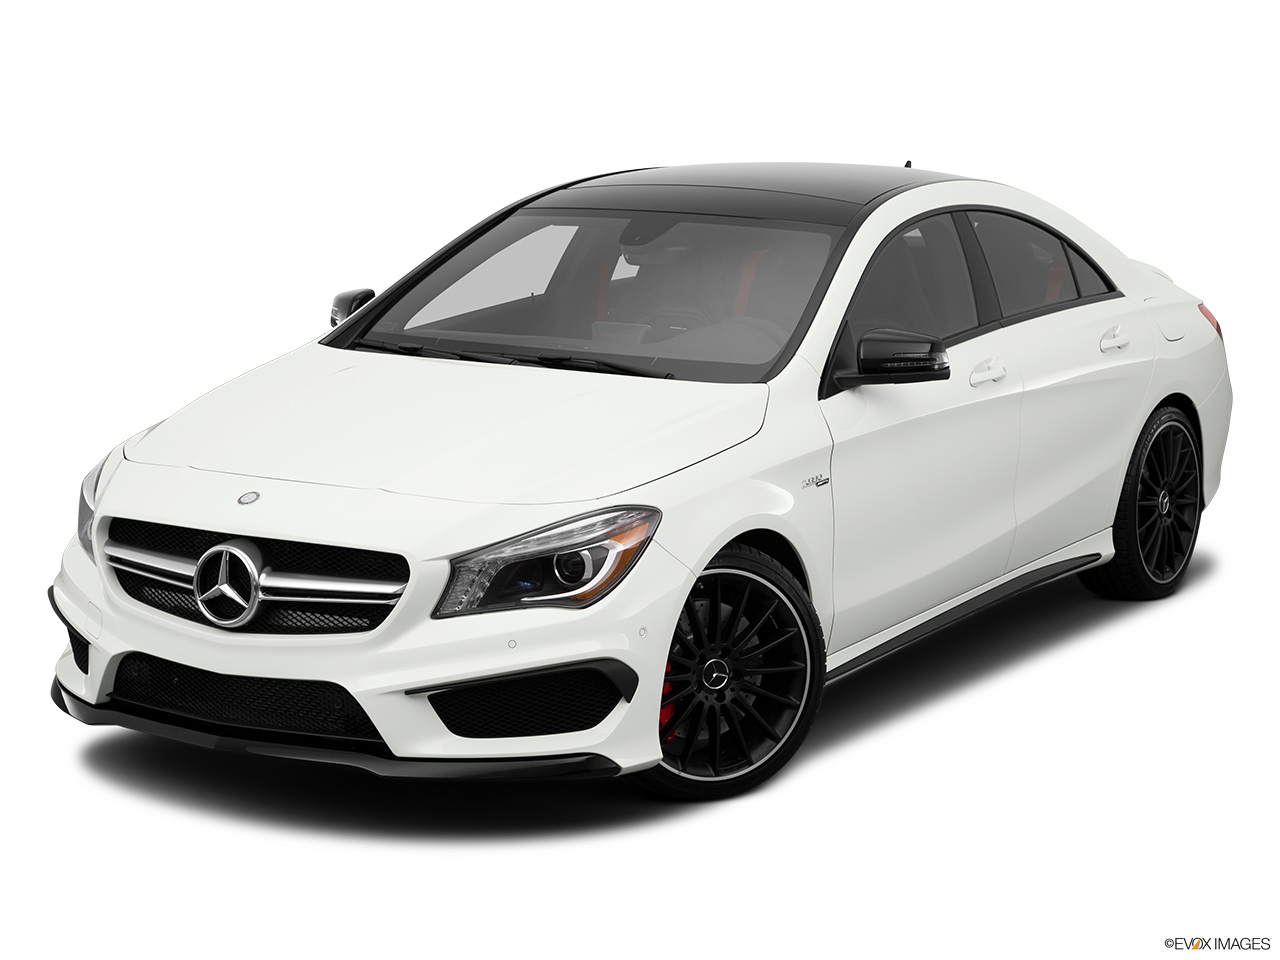 2014 mercedes benz cla class sedan cla45 amg 4matic for 2014 mercedes benz cla class review